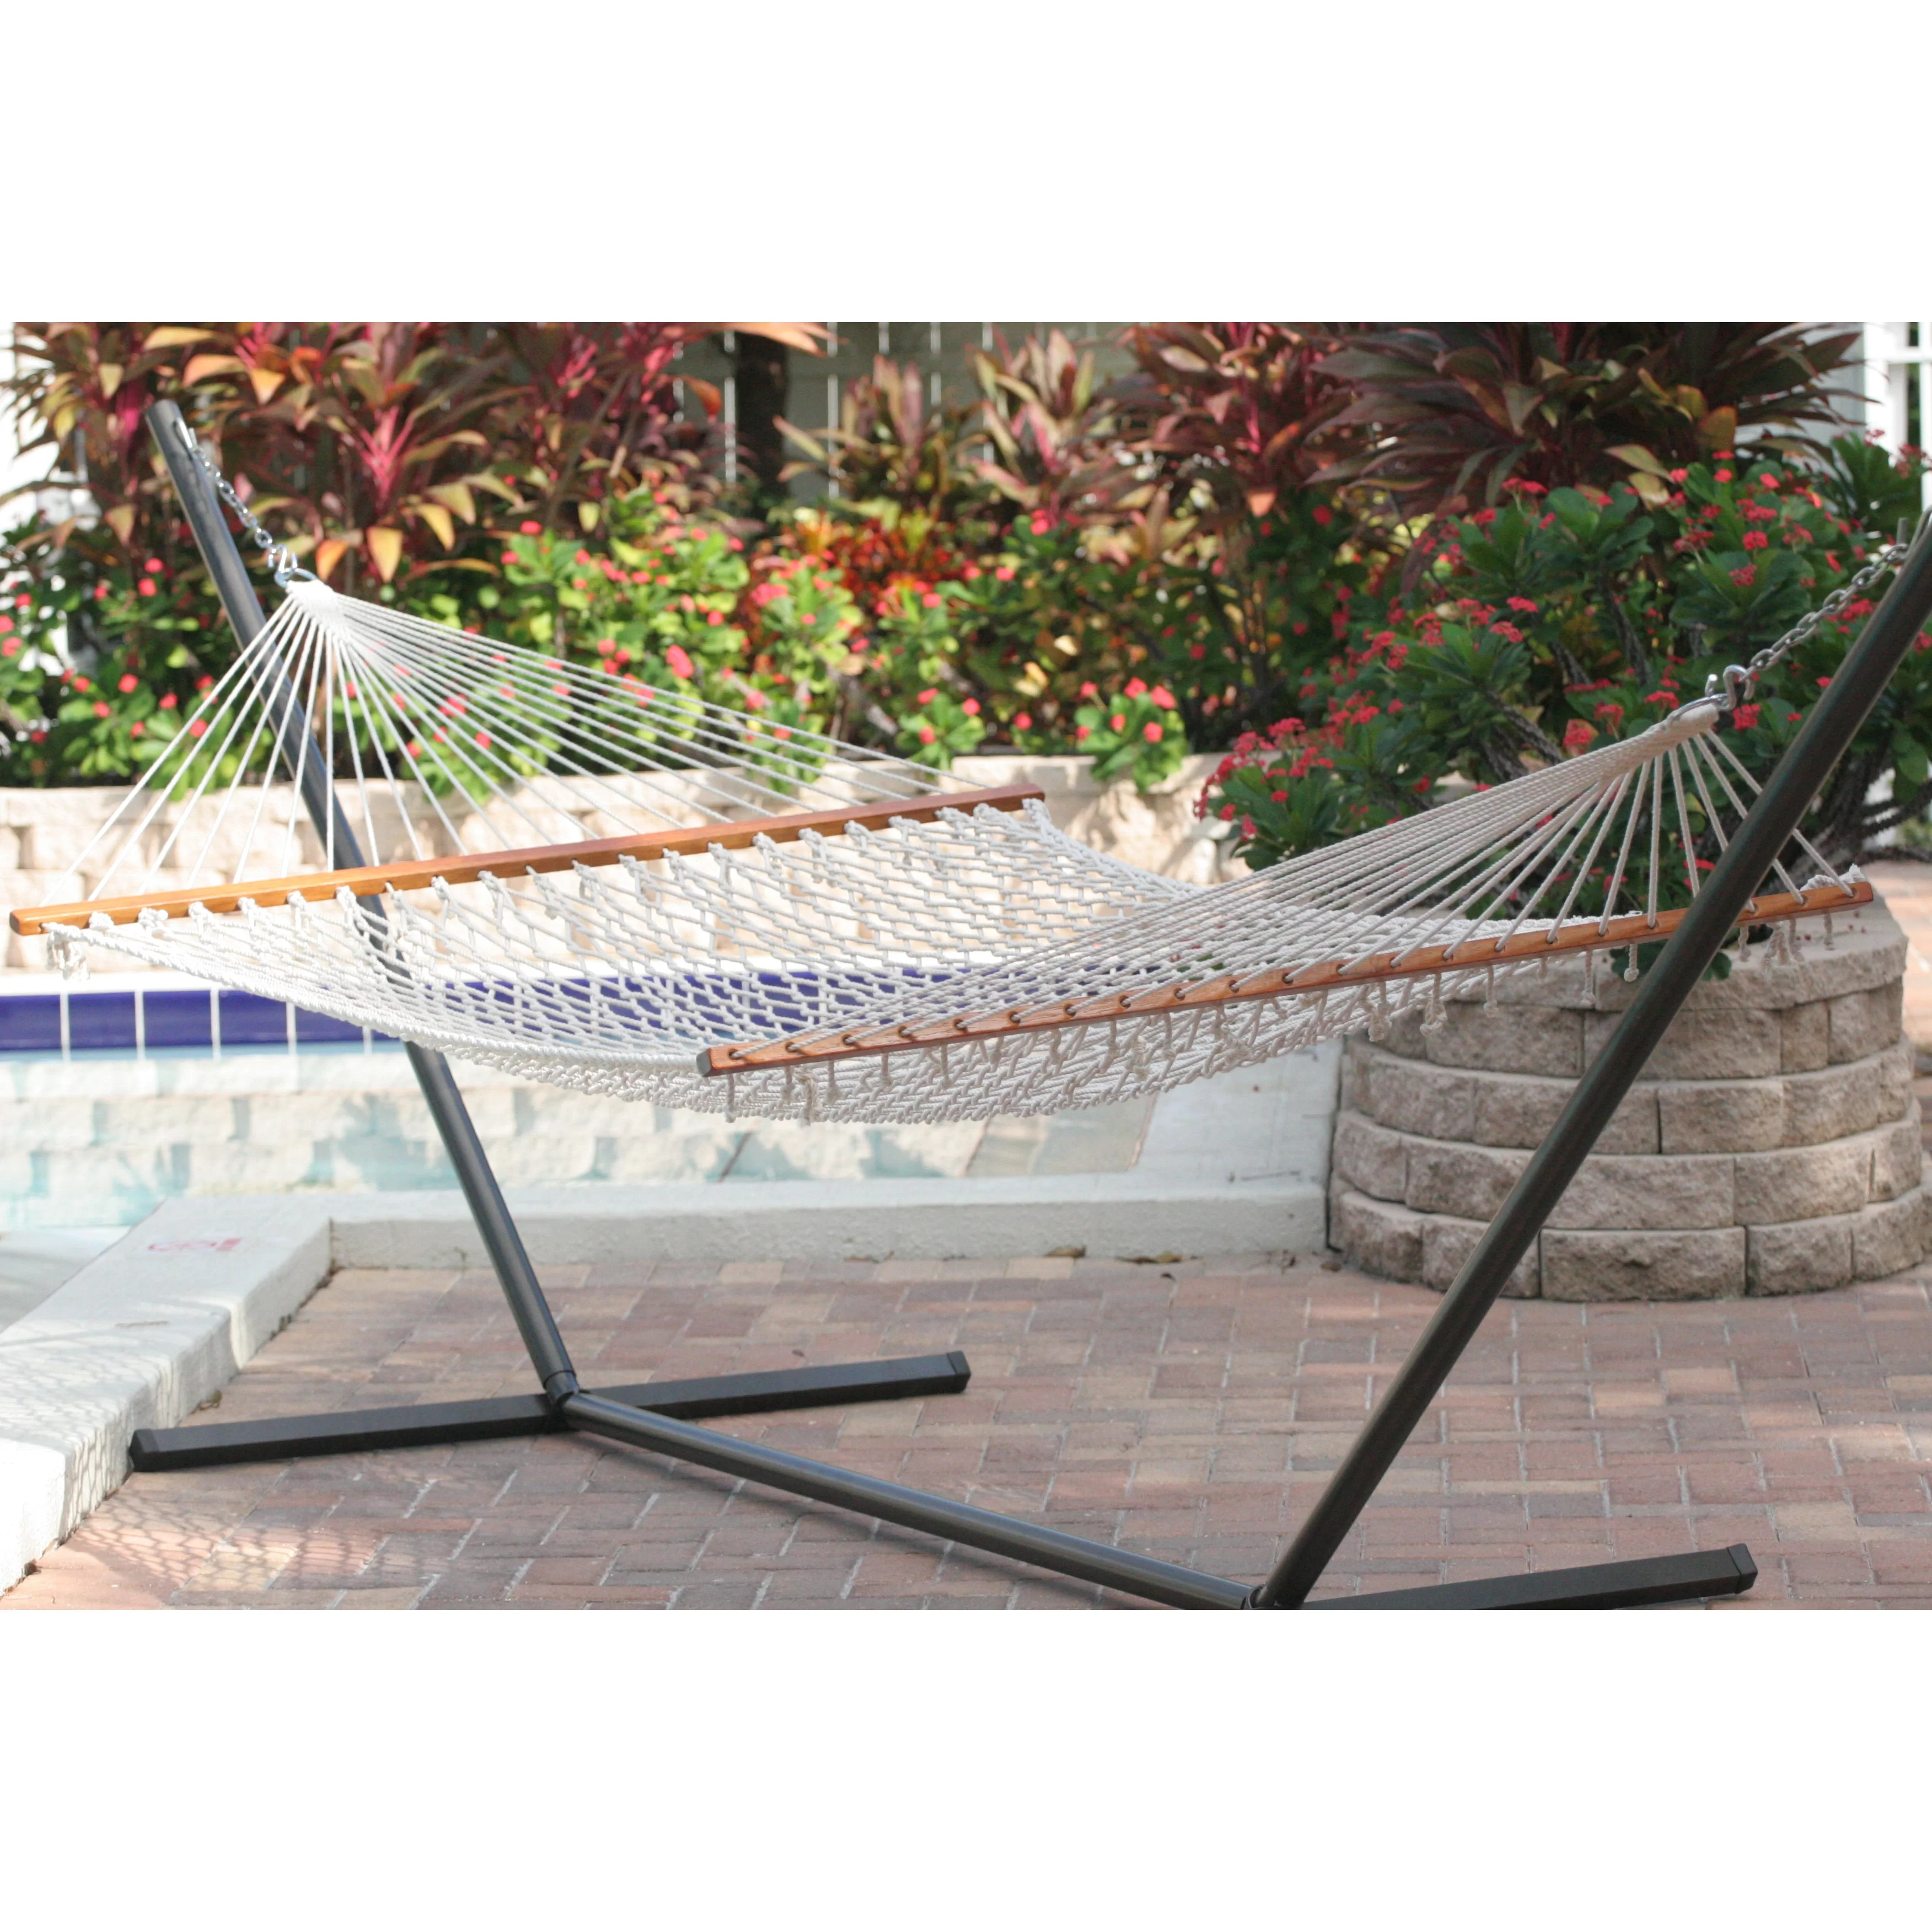 Smart Living Cancun Premium Two Person Rope Hammock